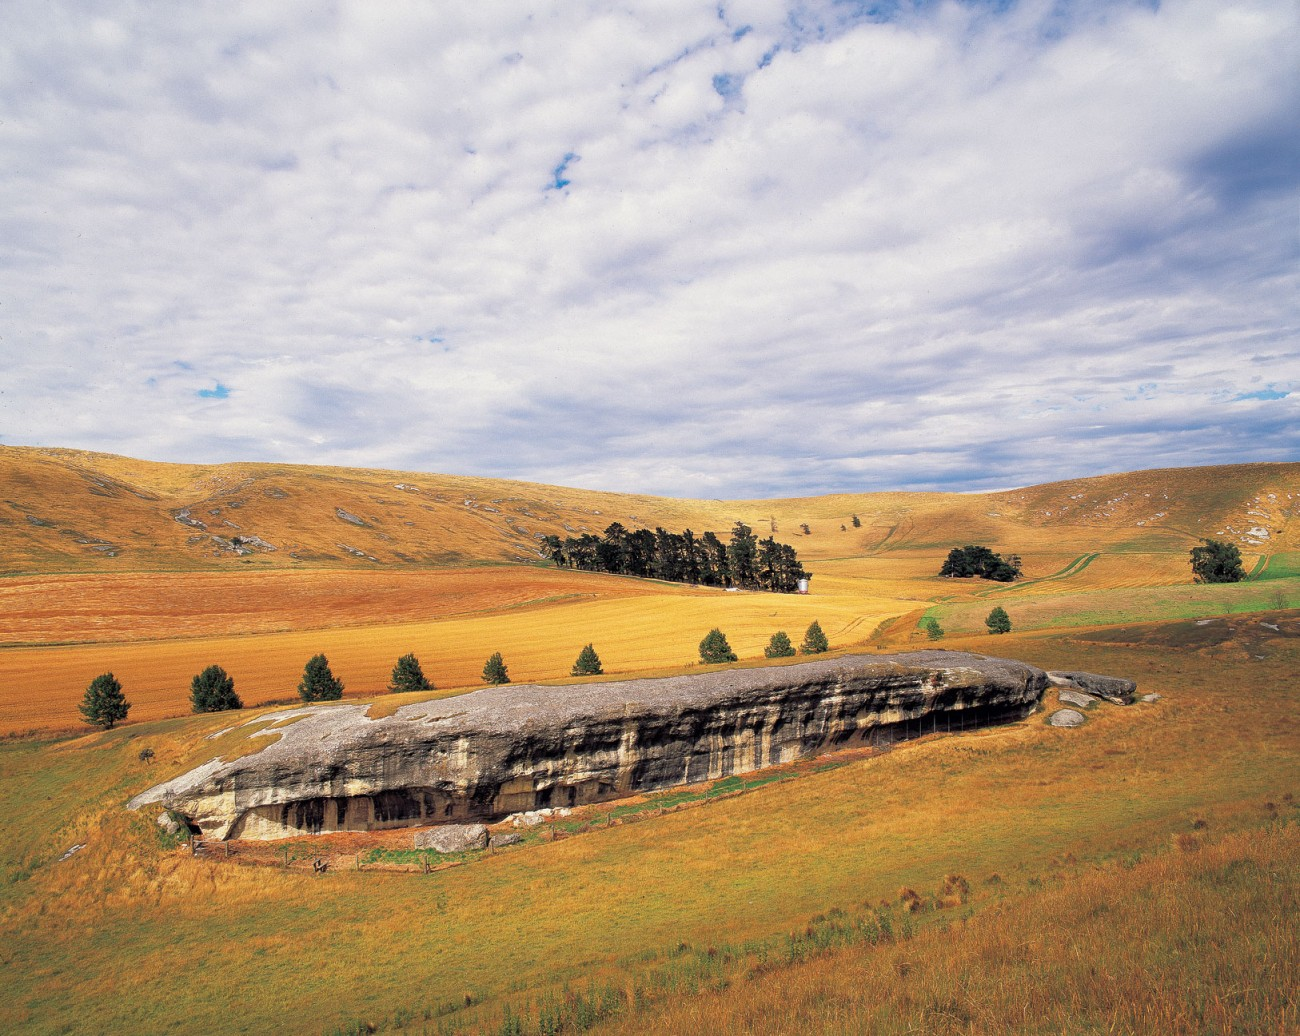 Many shallow caves, such as this long limestone shelter at Timpendean in Weka Pass, reveal a long history of repeated use thanks in large part to a bountiful food supply. The area was once heavily forested and birds, including moa, weak, kereru and kiwi, were abundant. Recent excavations of the shelter floor found evidence of recurring occupation between 600 and 1000 years ago.